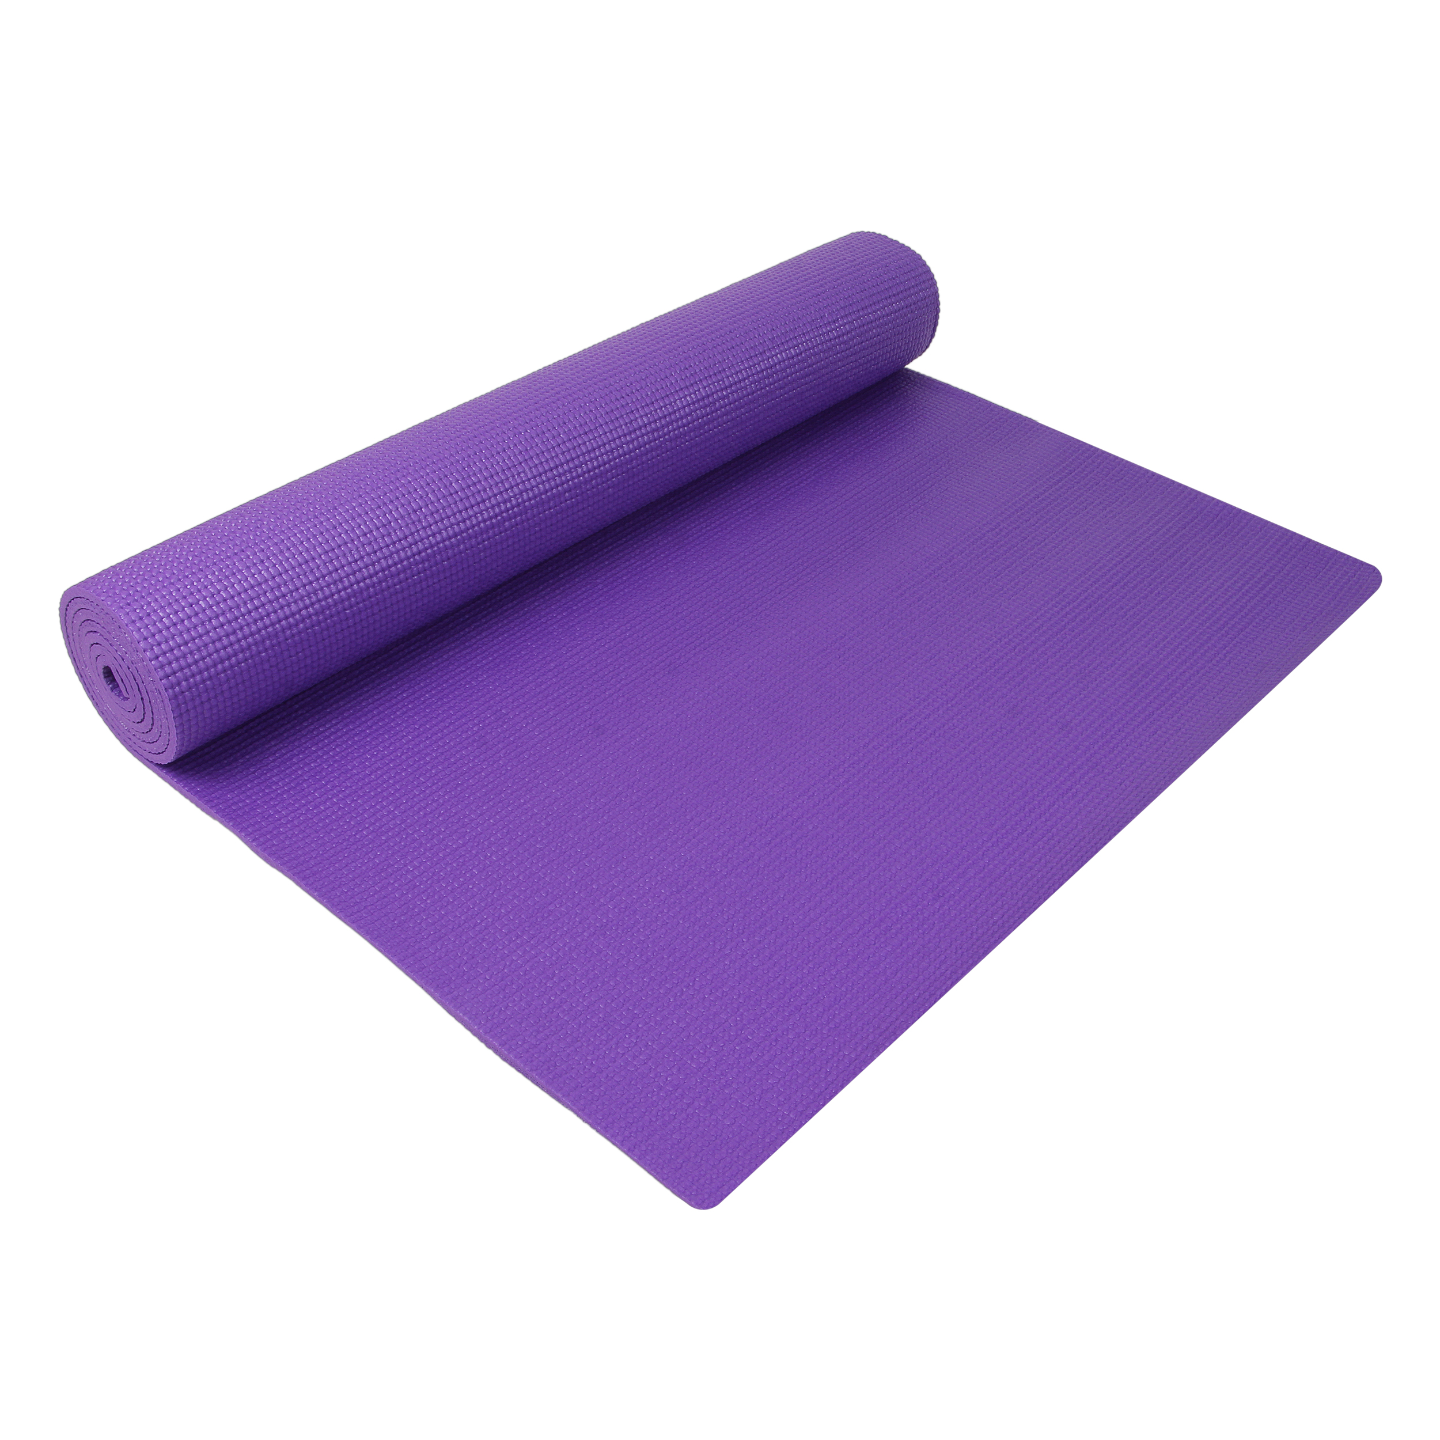 PROLINE PVC YOGA MAT 6mm